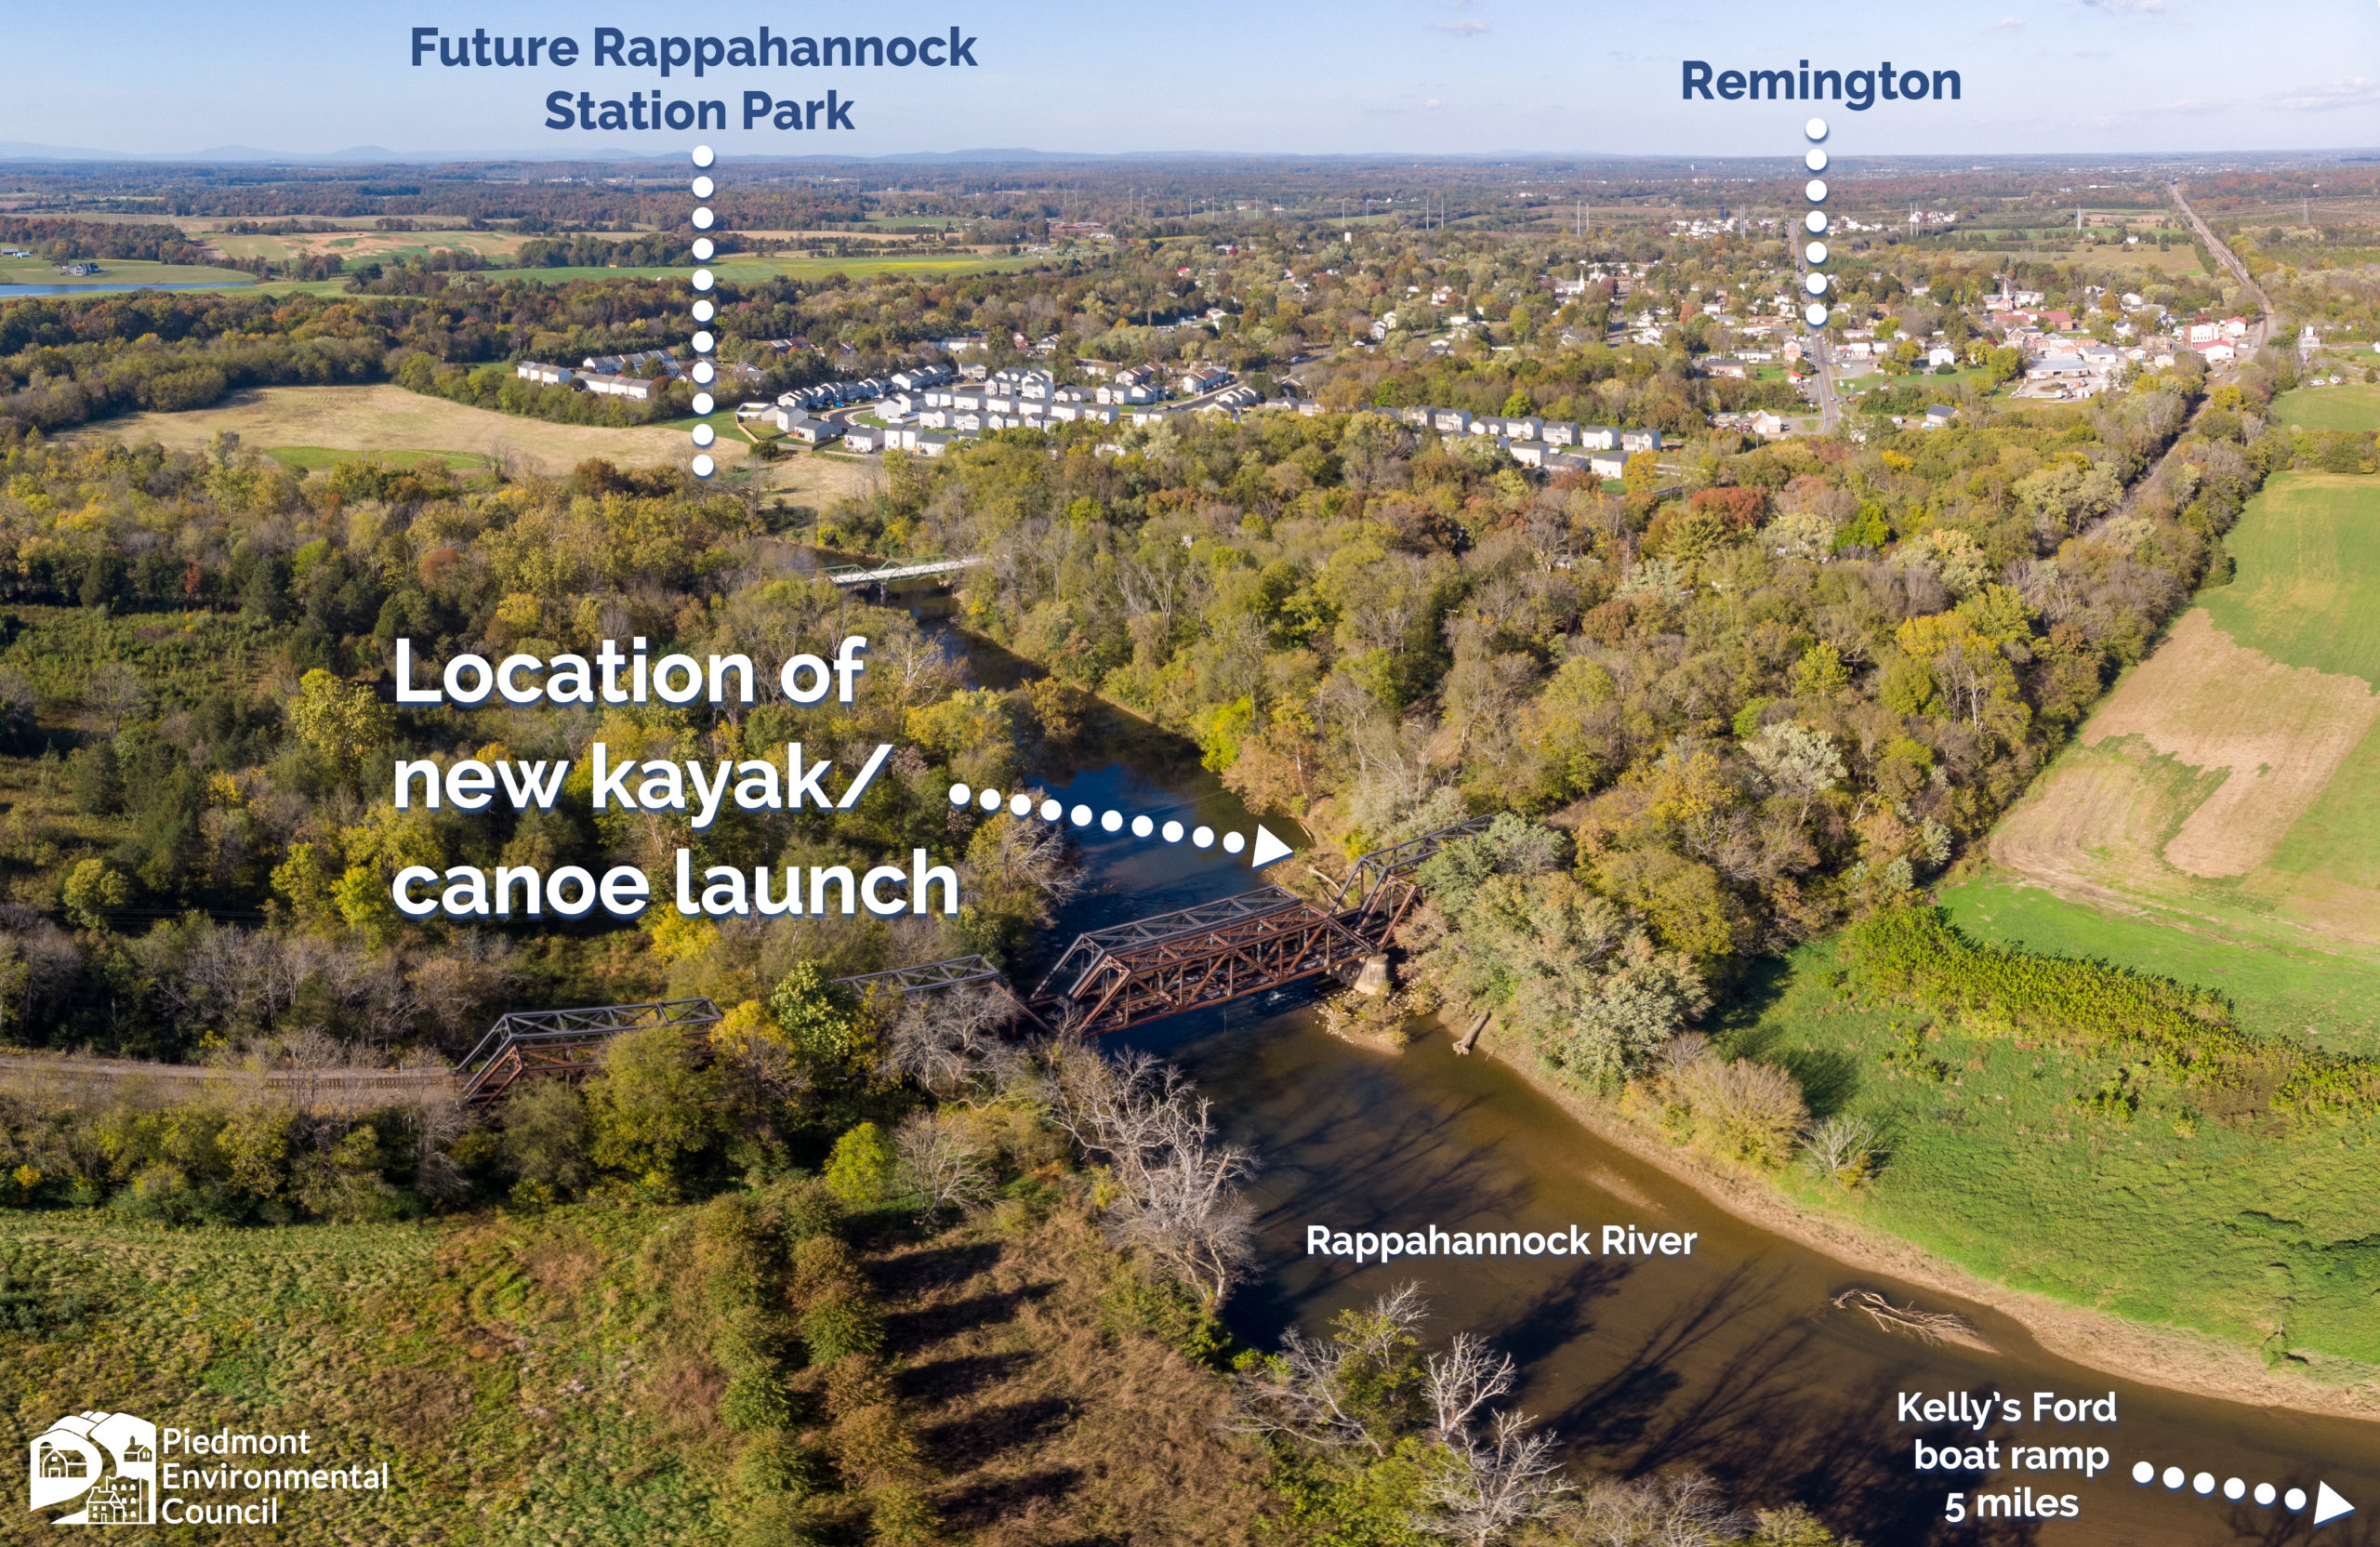 aerial image of Rappahannock river with boat launch marked